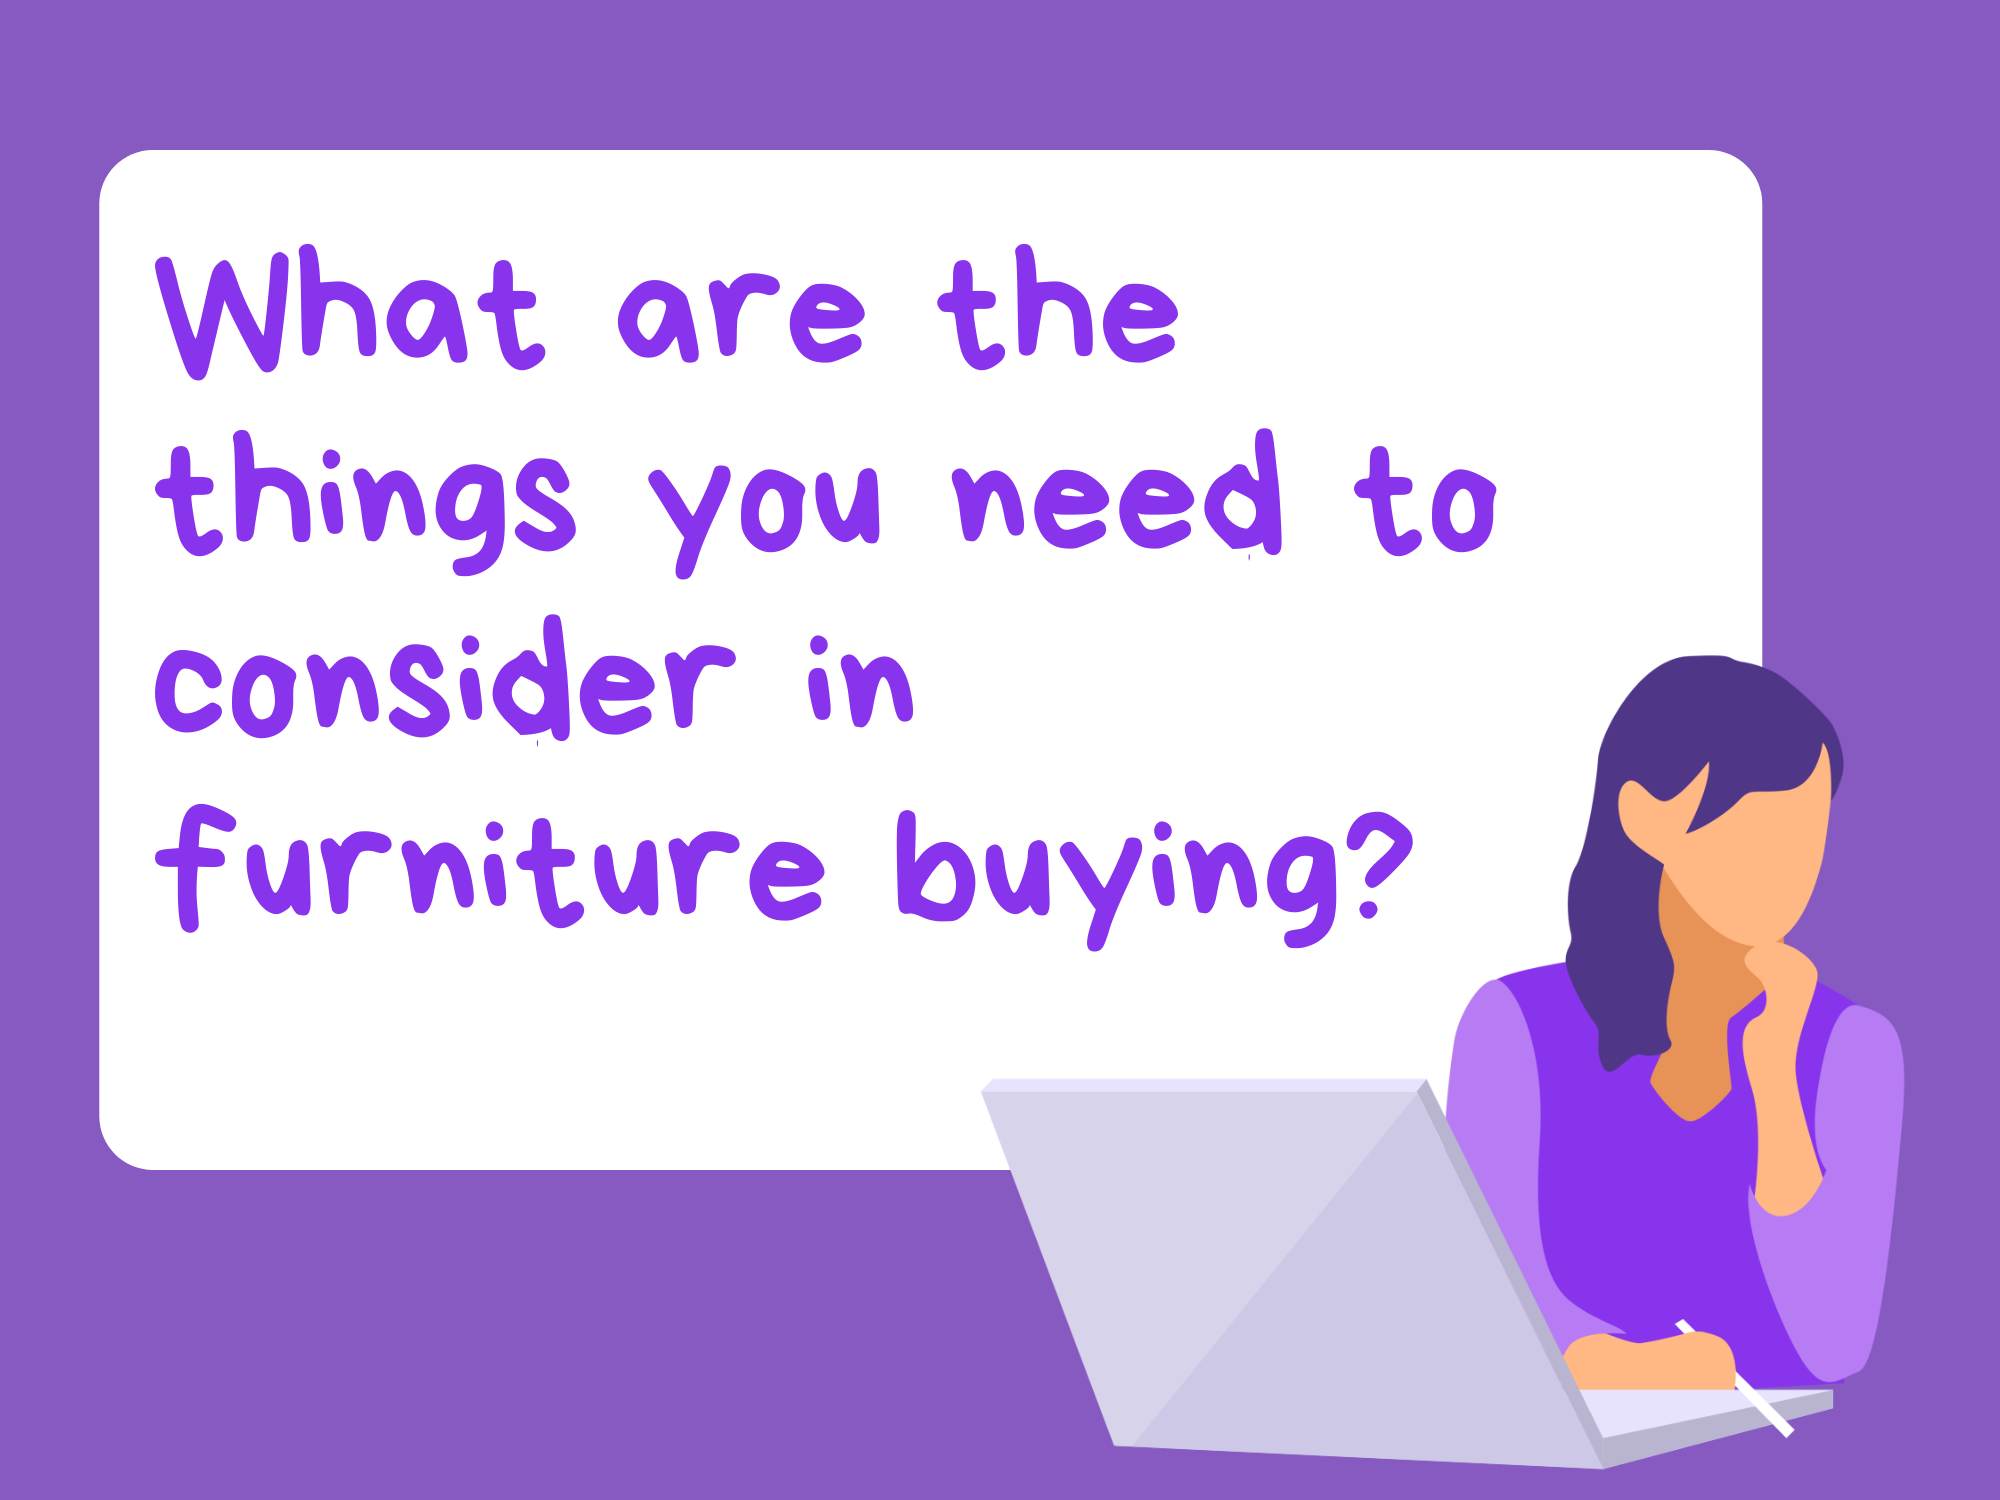 What-are-the-things-you-need-to-consider-in-furniture-buying